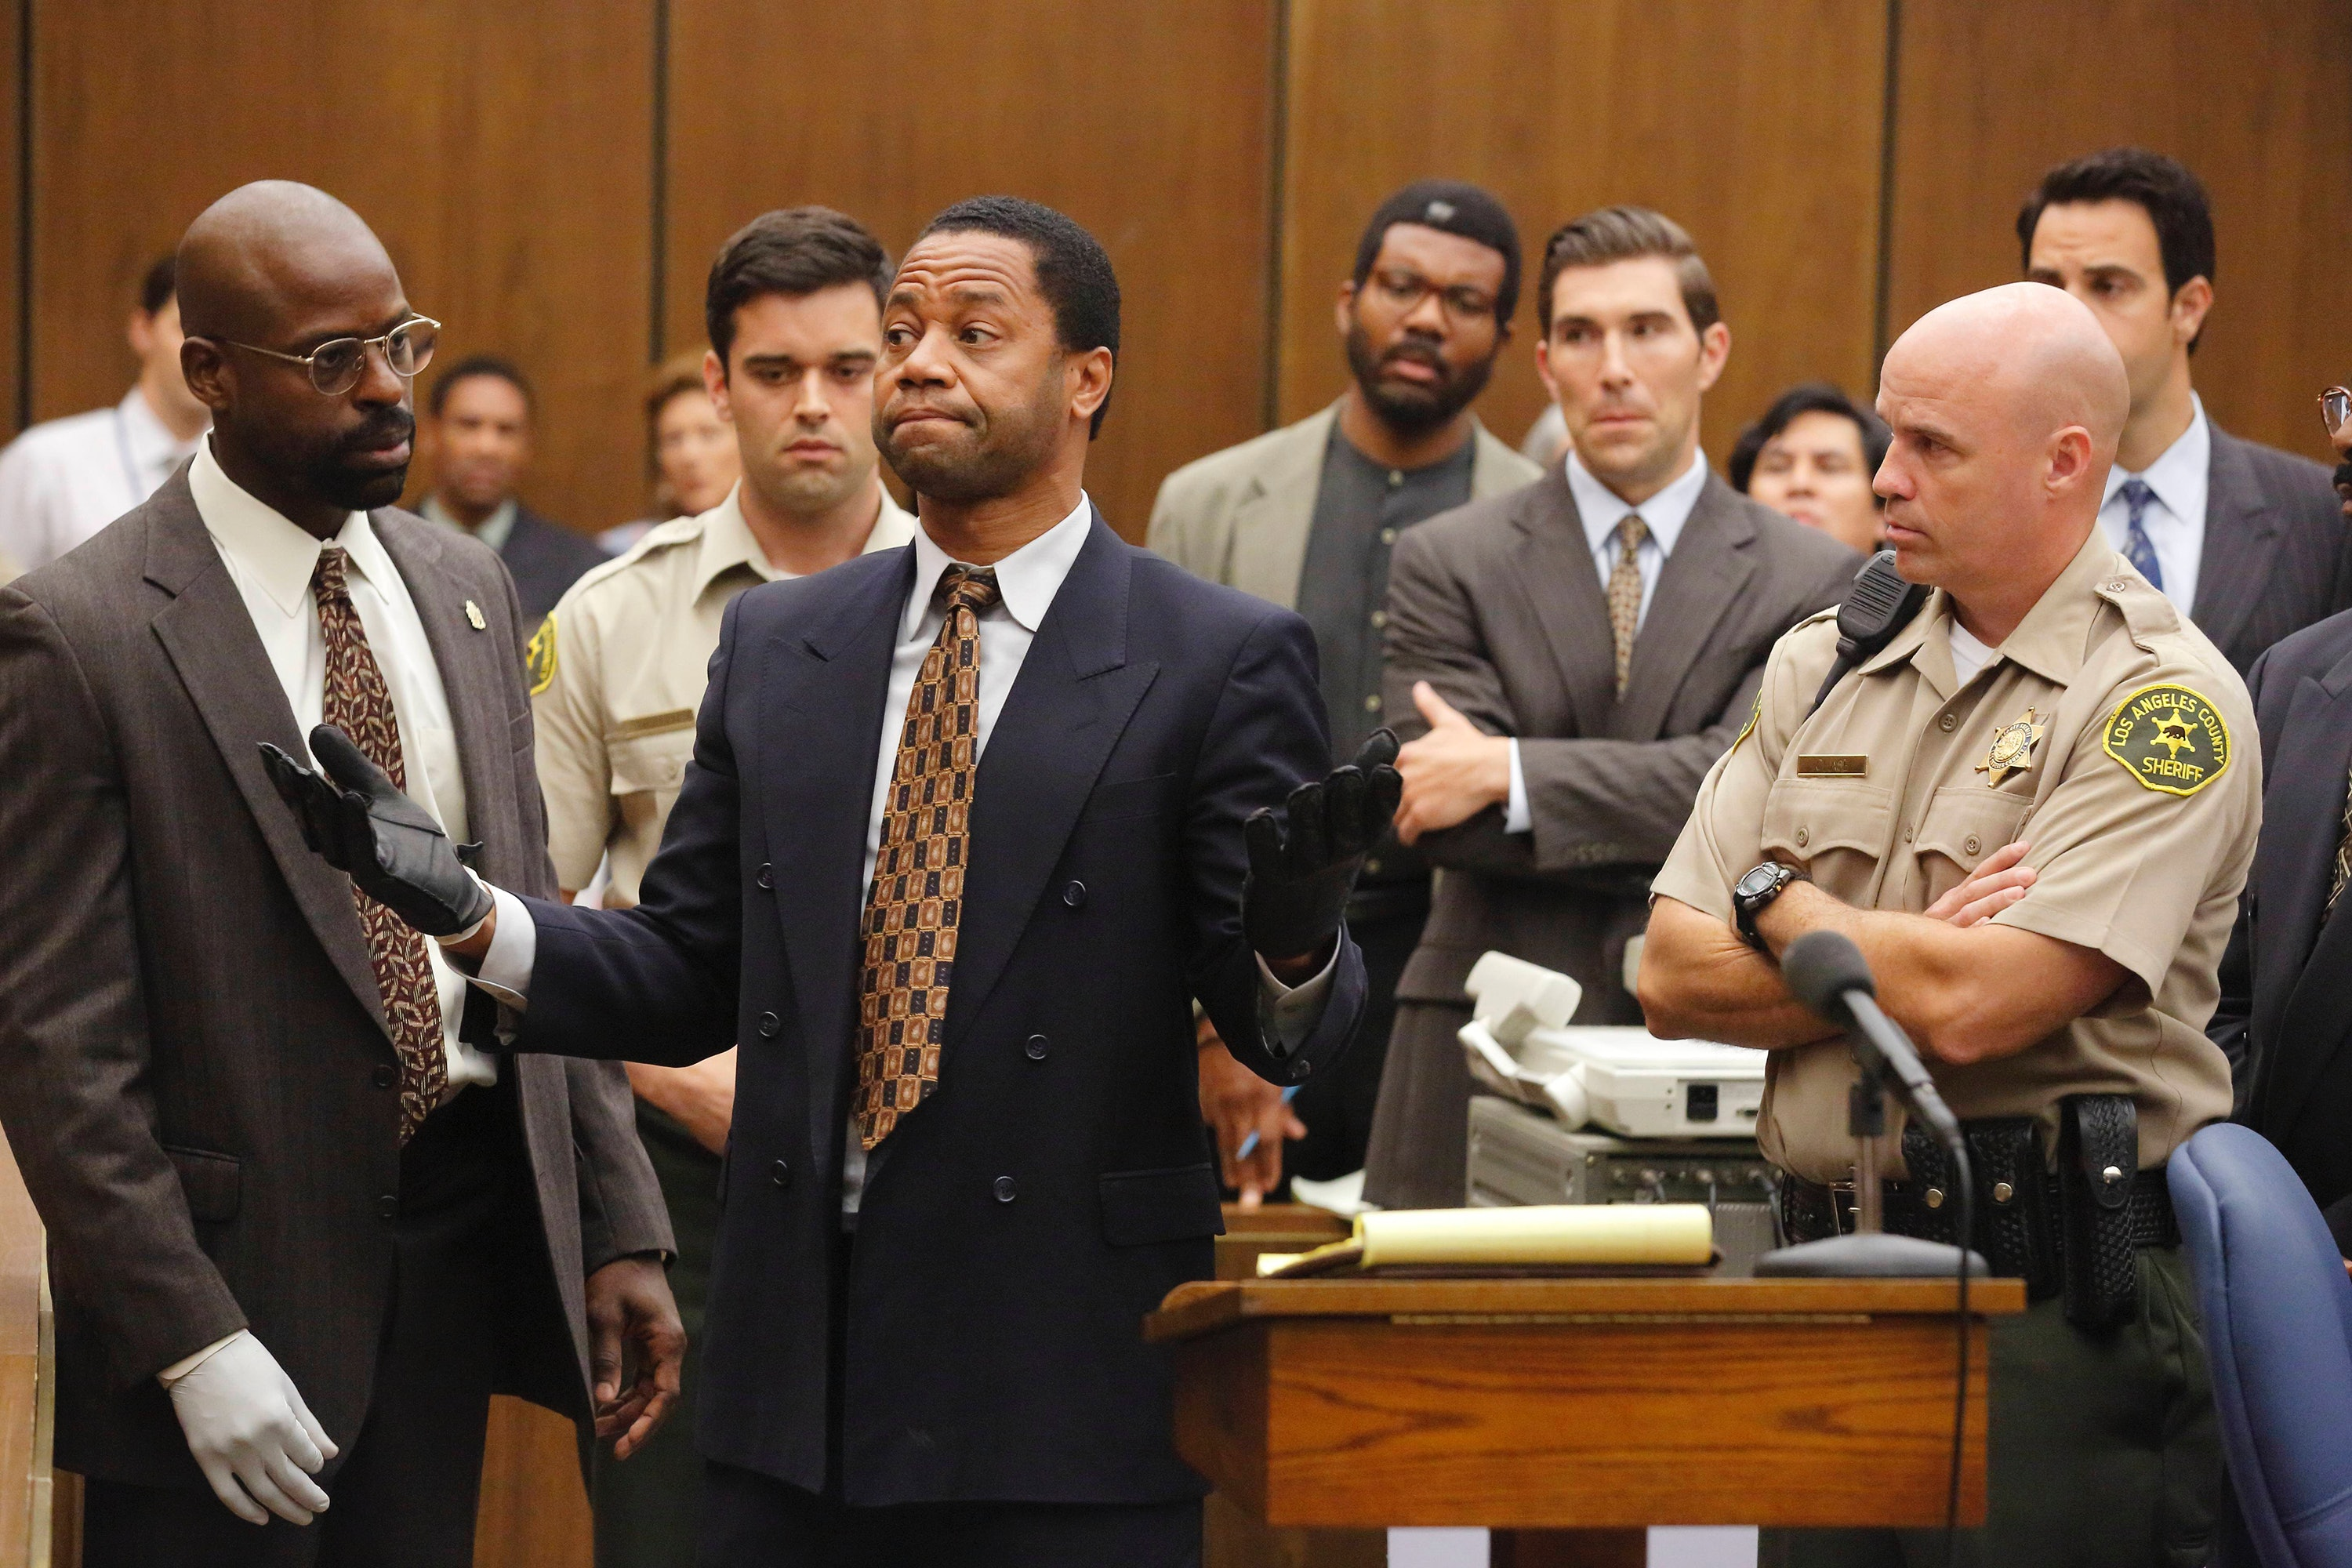 How Long Was The O J  Simpson Jury Sequestered? This Trial